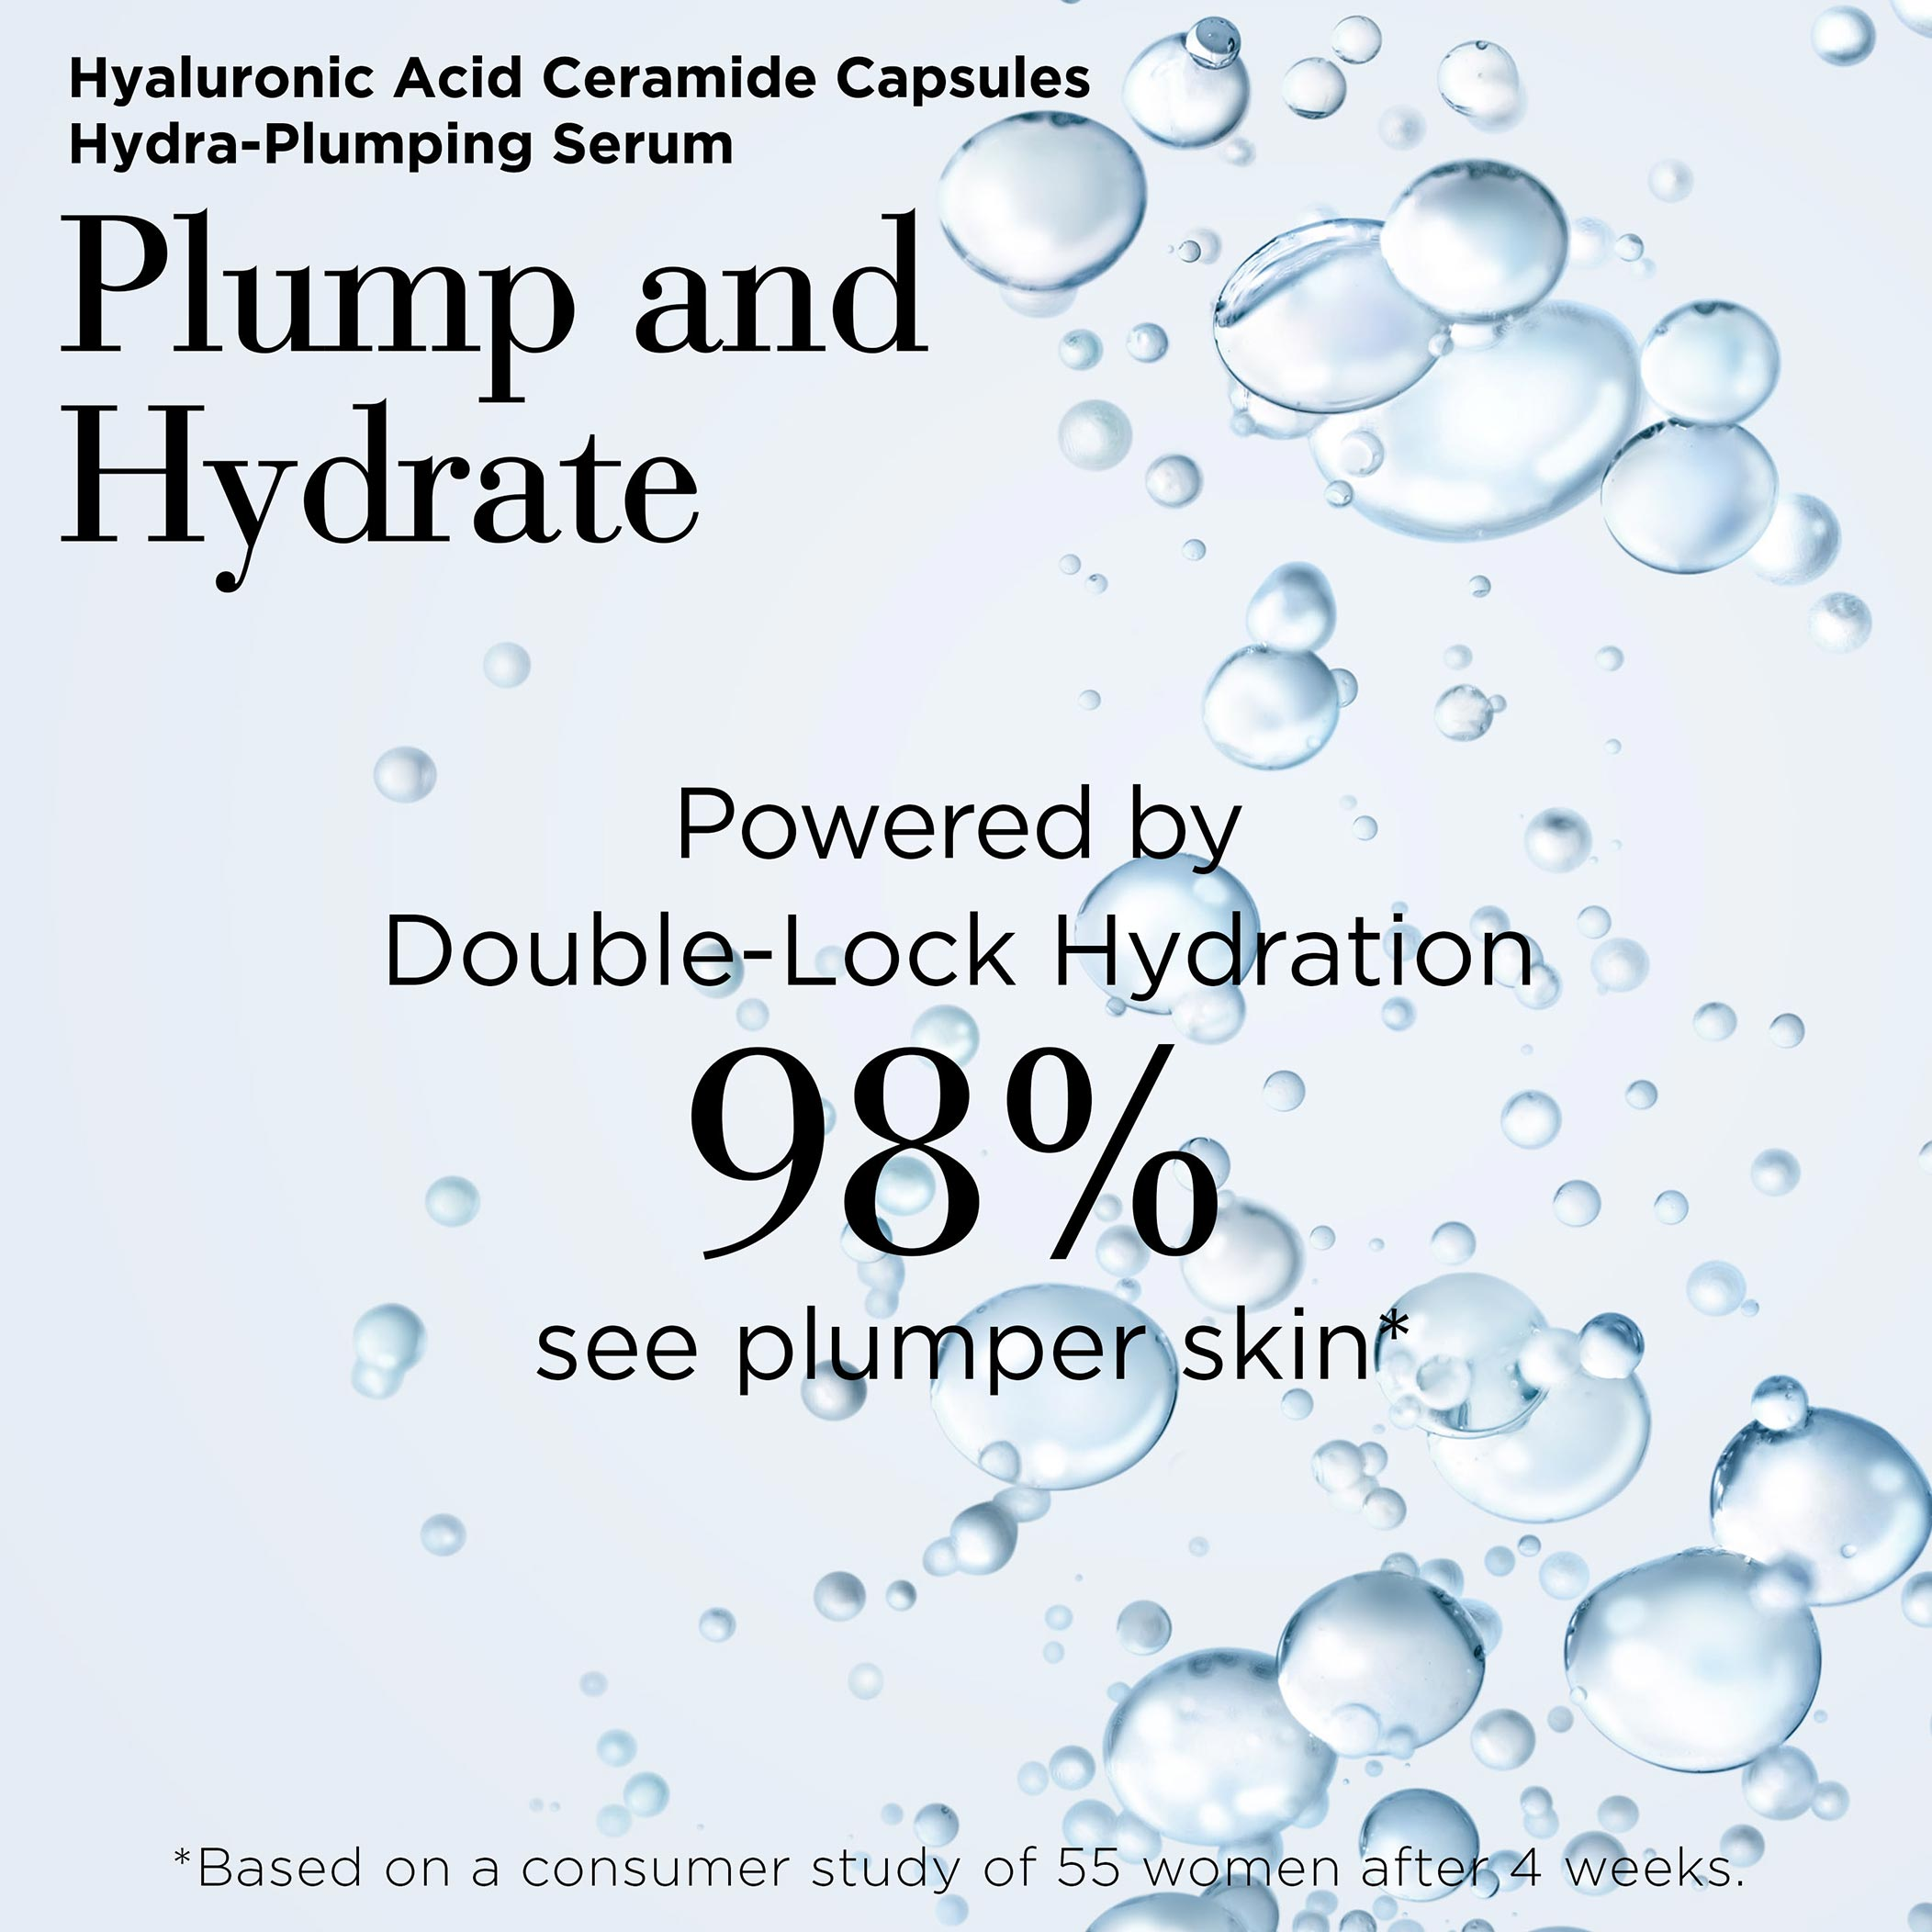 Hyaluronic Acid Capsules Plump and Hydrate- Powered by double-lock hydration, 98% see plumper skin based on a consumer study of 55 women after 4 weeks